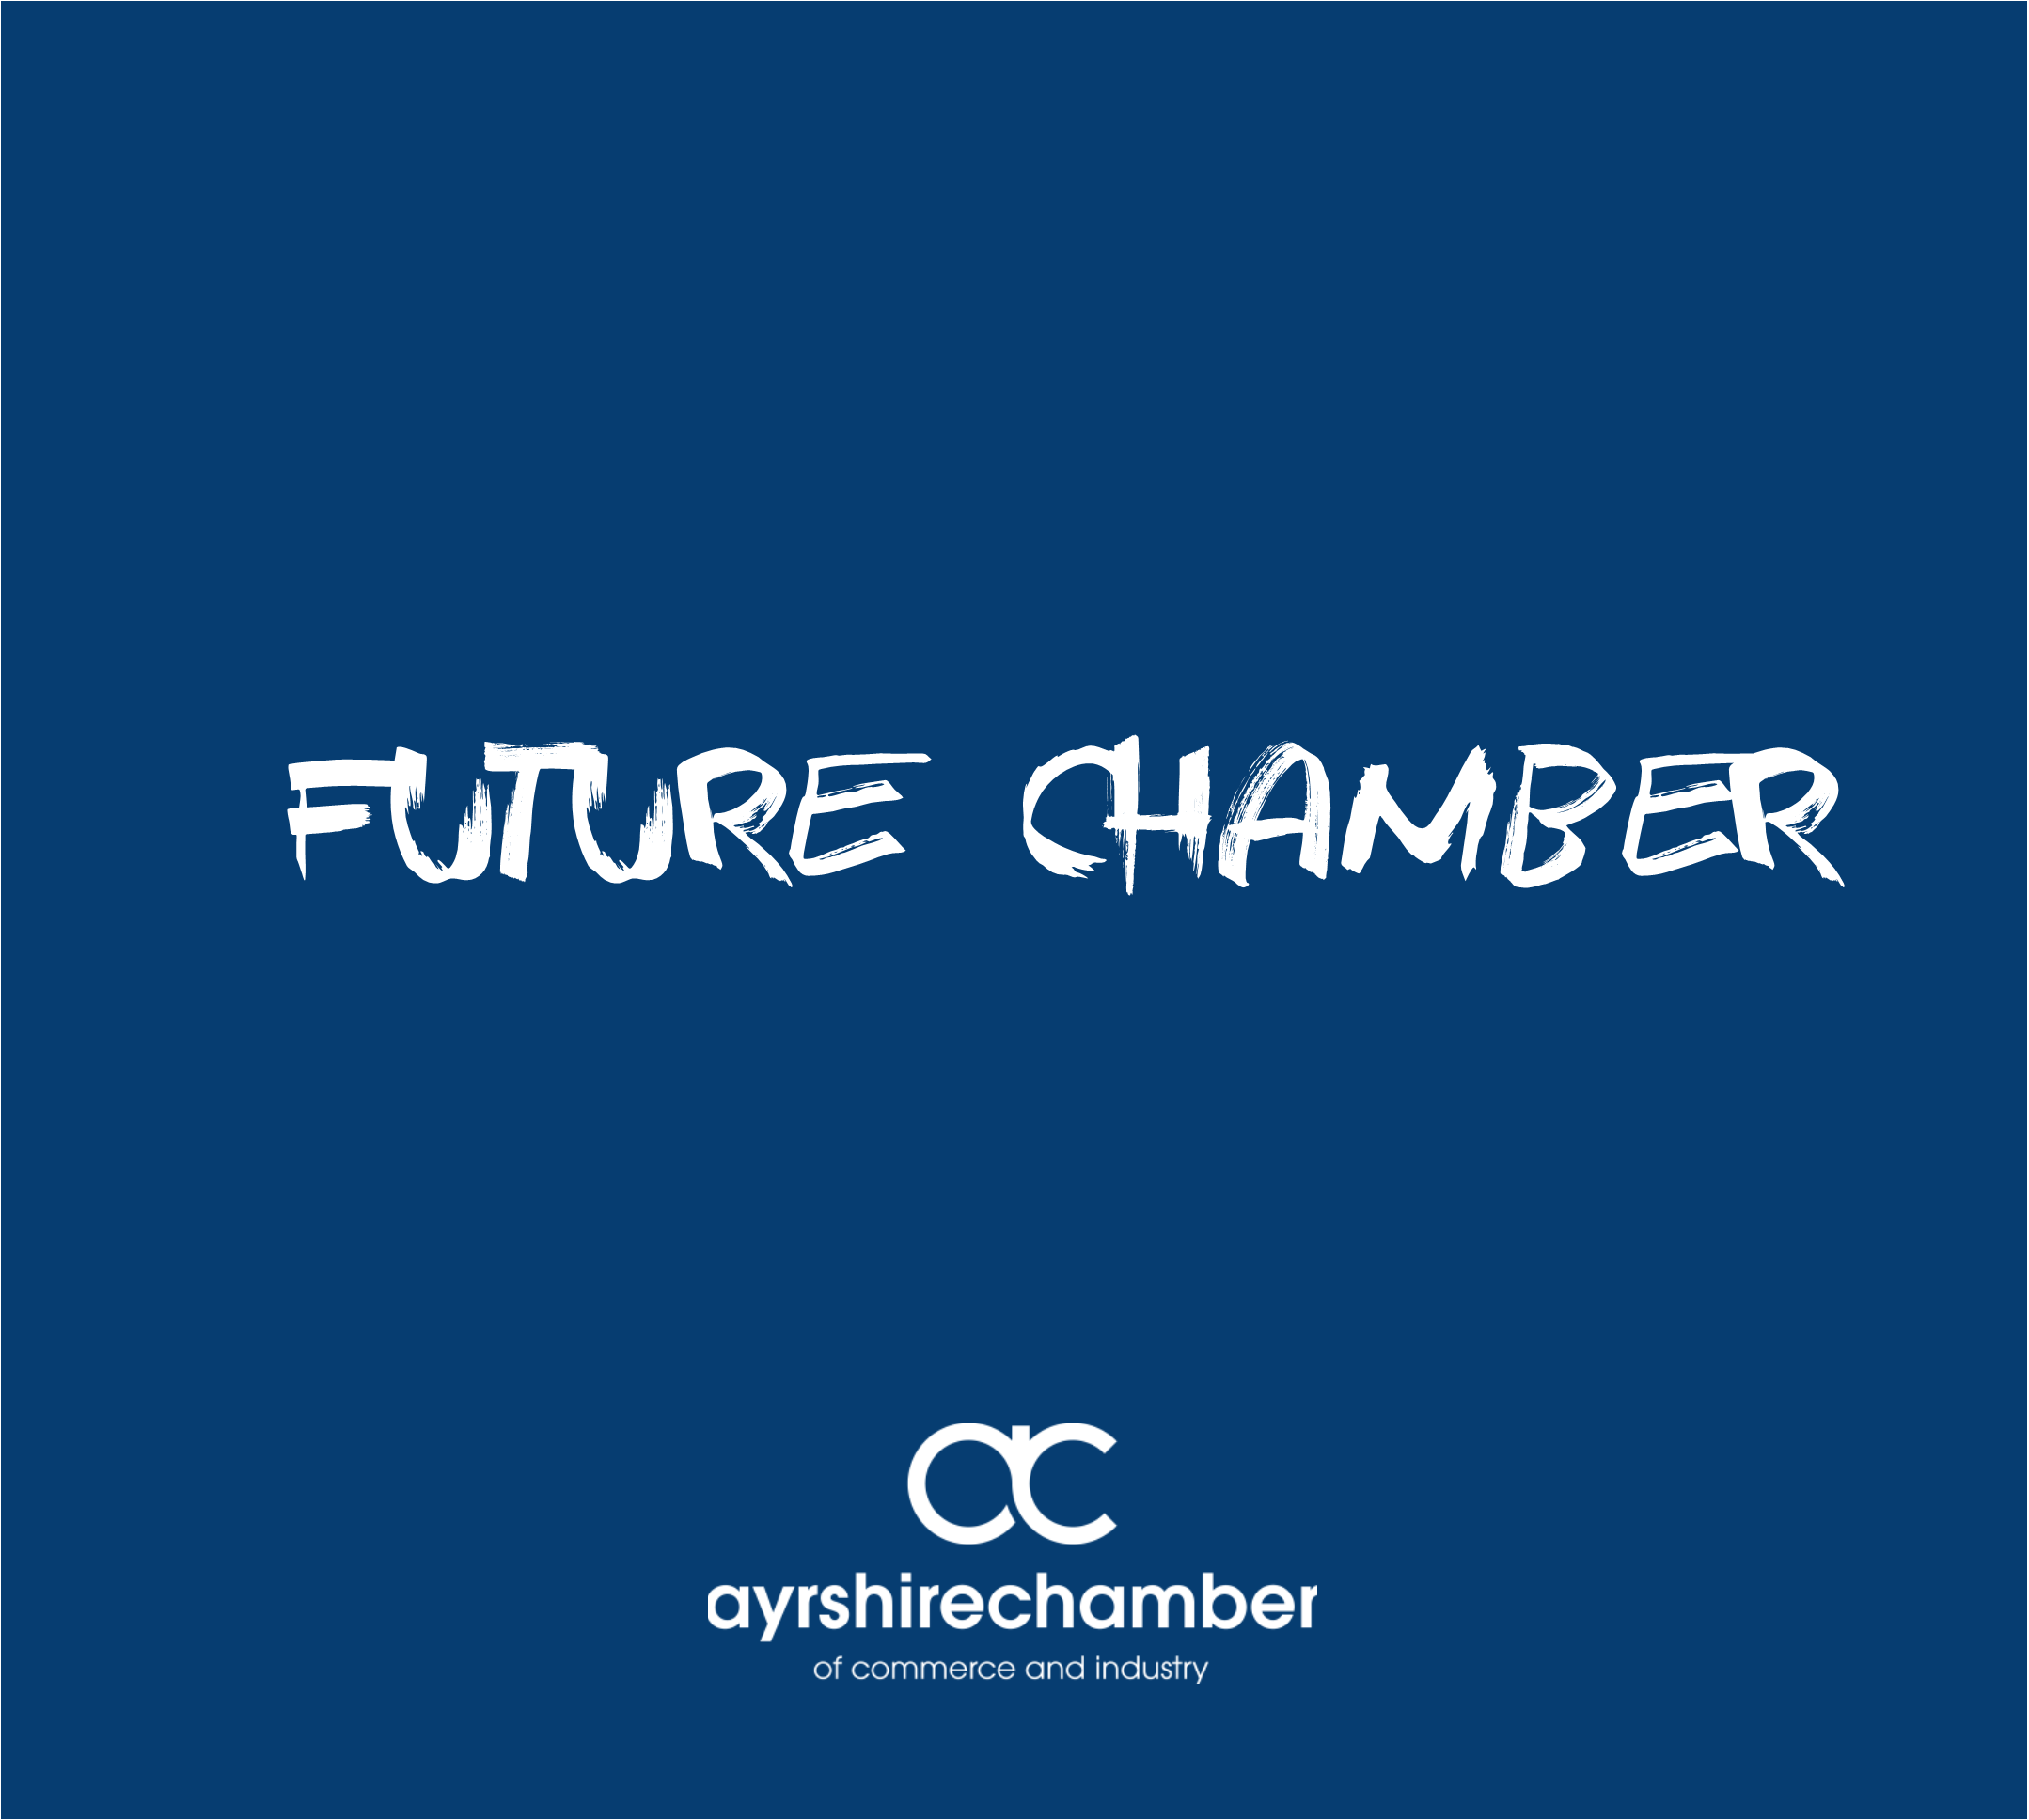 MEMBERS OF THE FUTURE CHAMBER